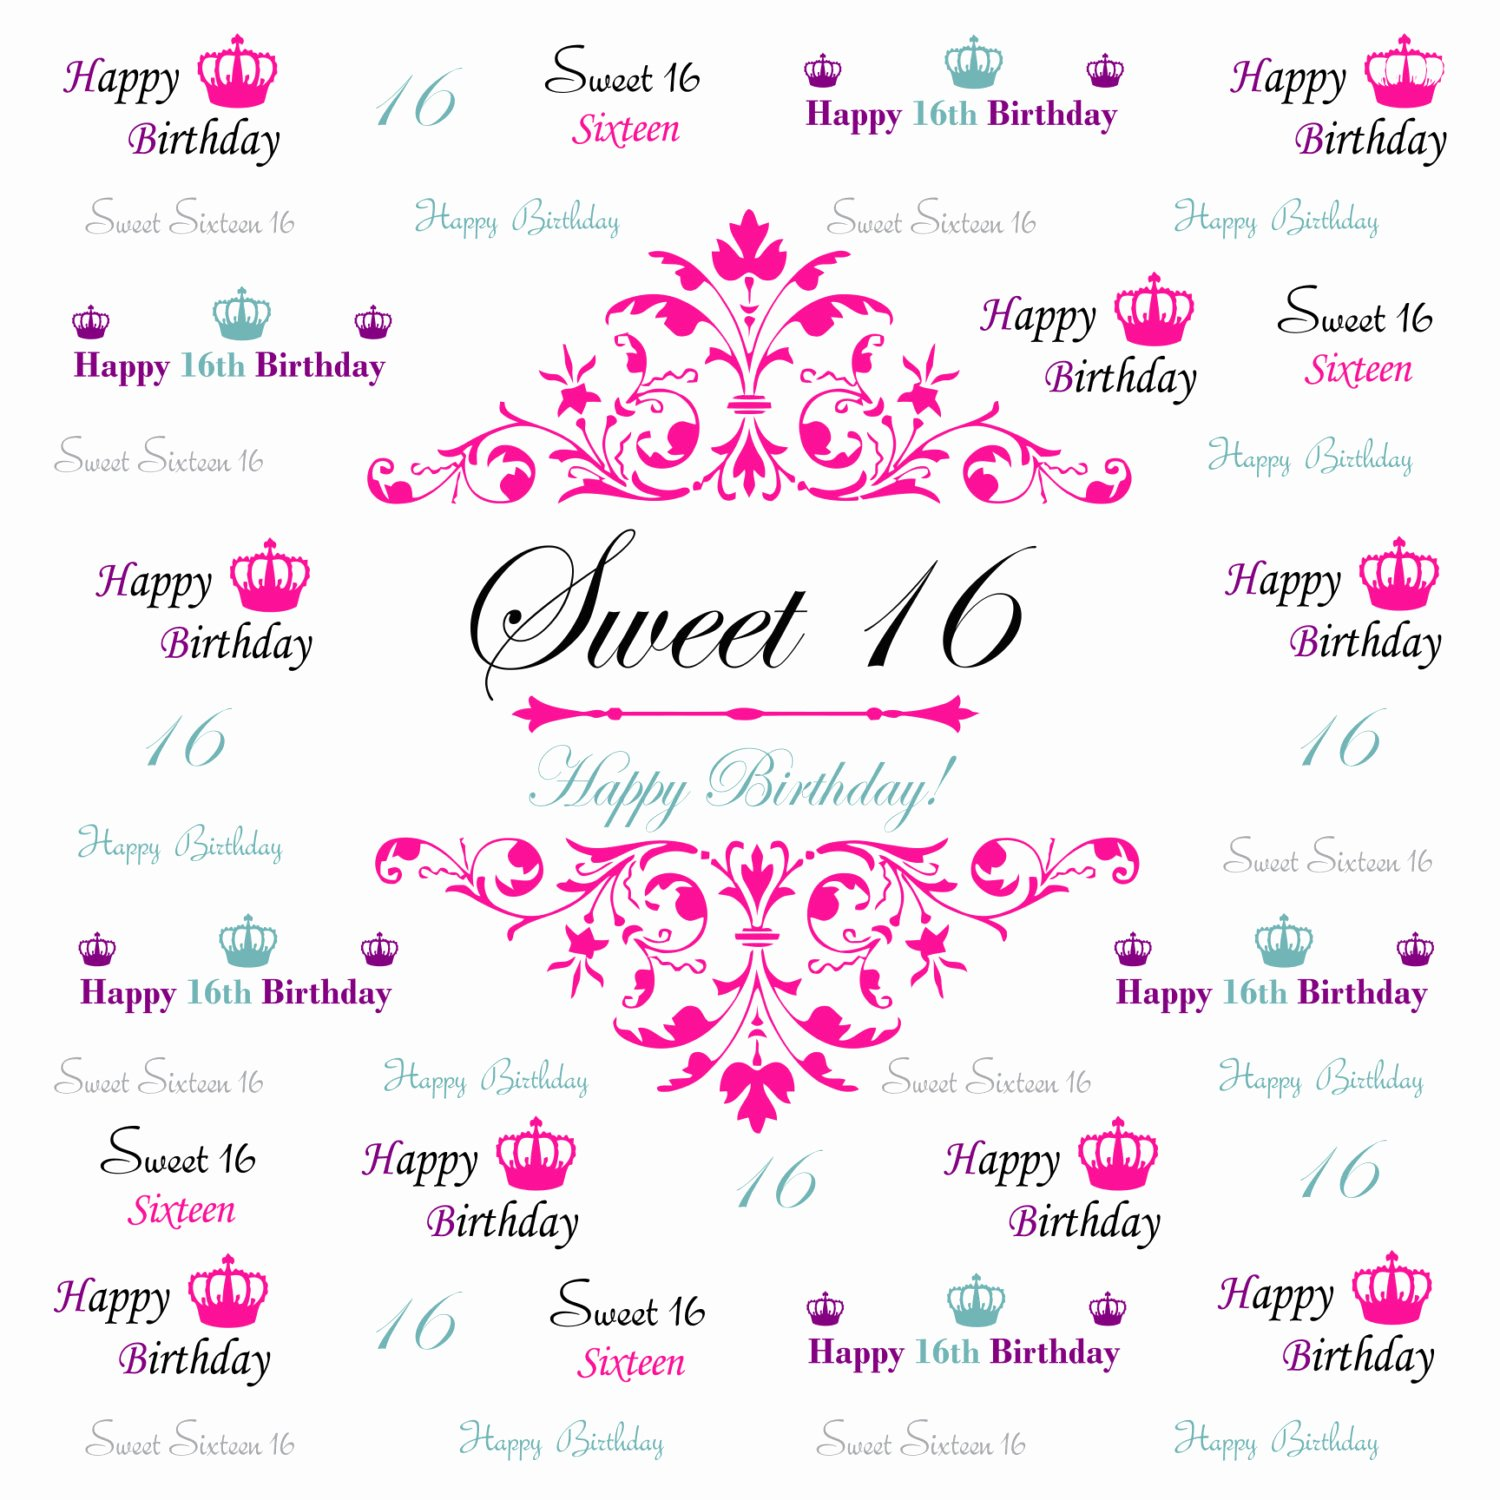 Red Carpet Backdrop Template New Sweet 16 Backdrop event Step and Repeat Backdrop Birthday